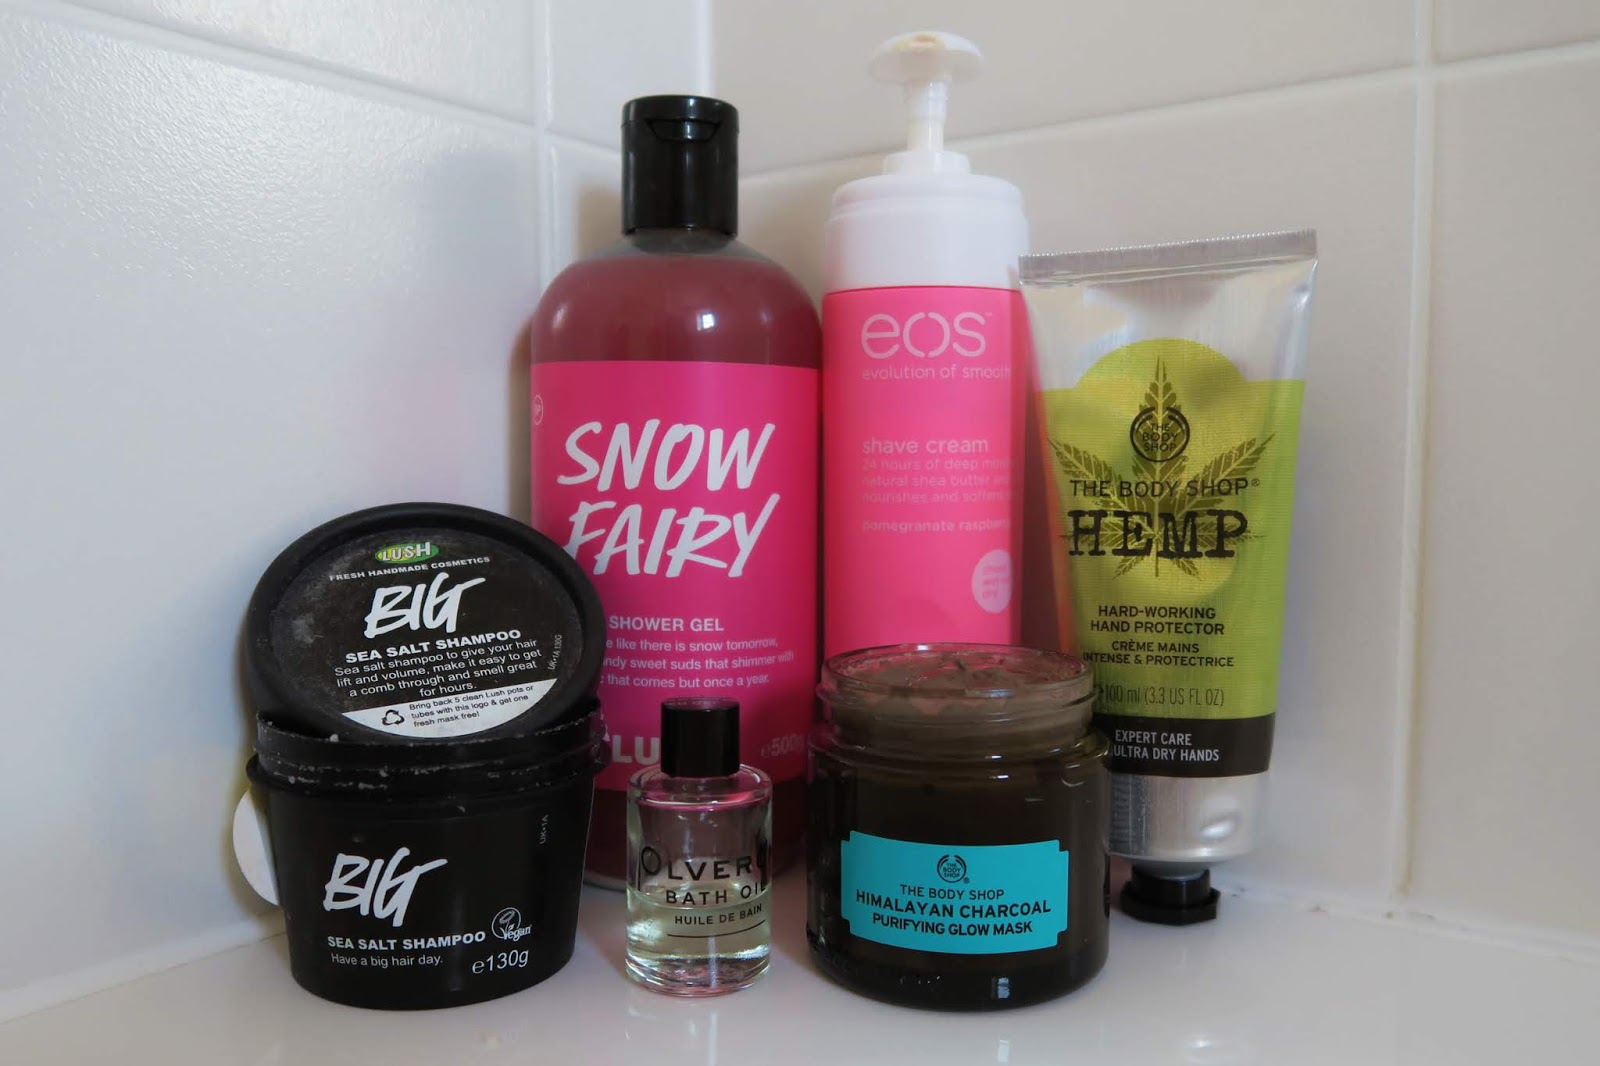 Photo shows the following products: Big sea salt shampoo, olverum bath oil, hemp hand cream, snow fairy, himalayan charcoal mask